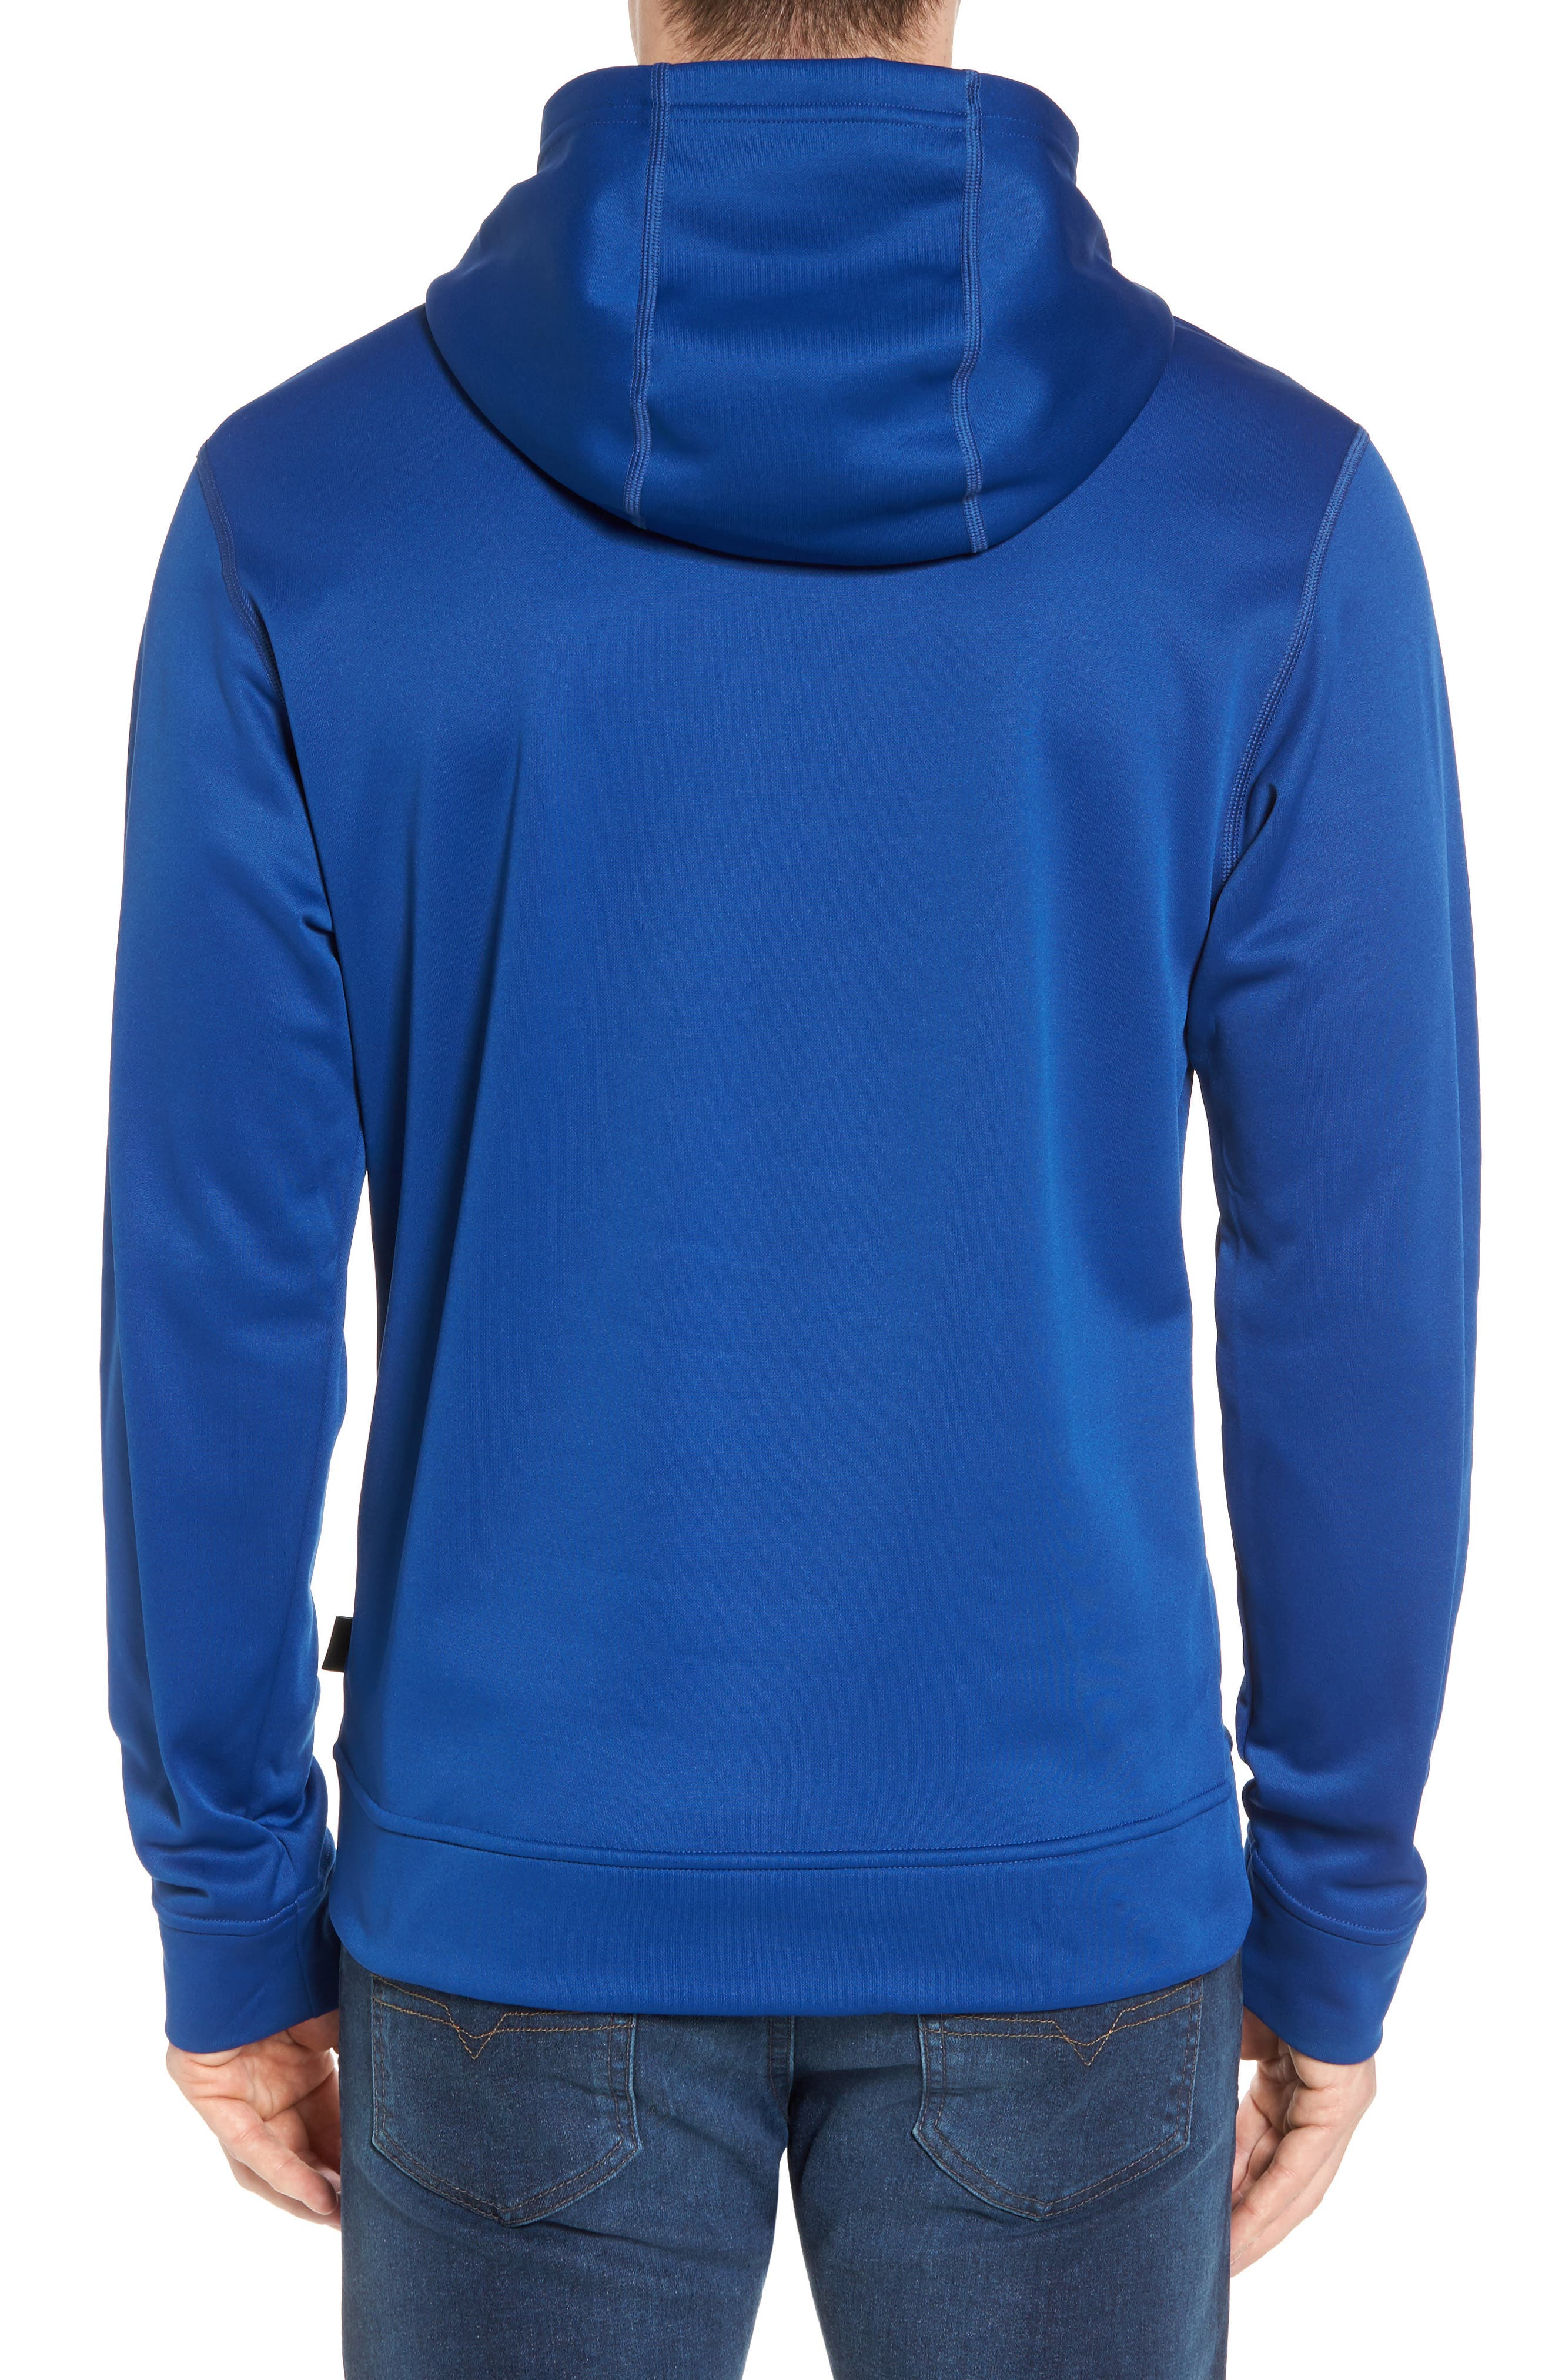 Polycycle Hoodie,                             Alternate thumbnail 4, color,